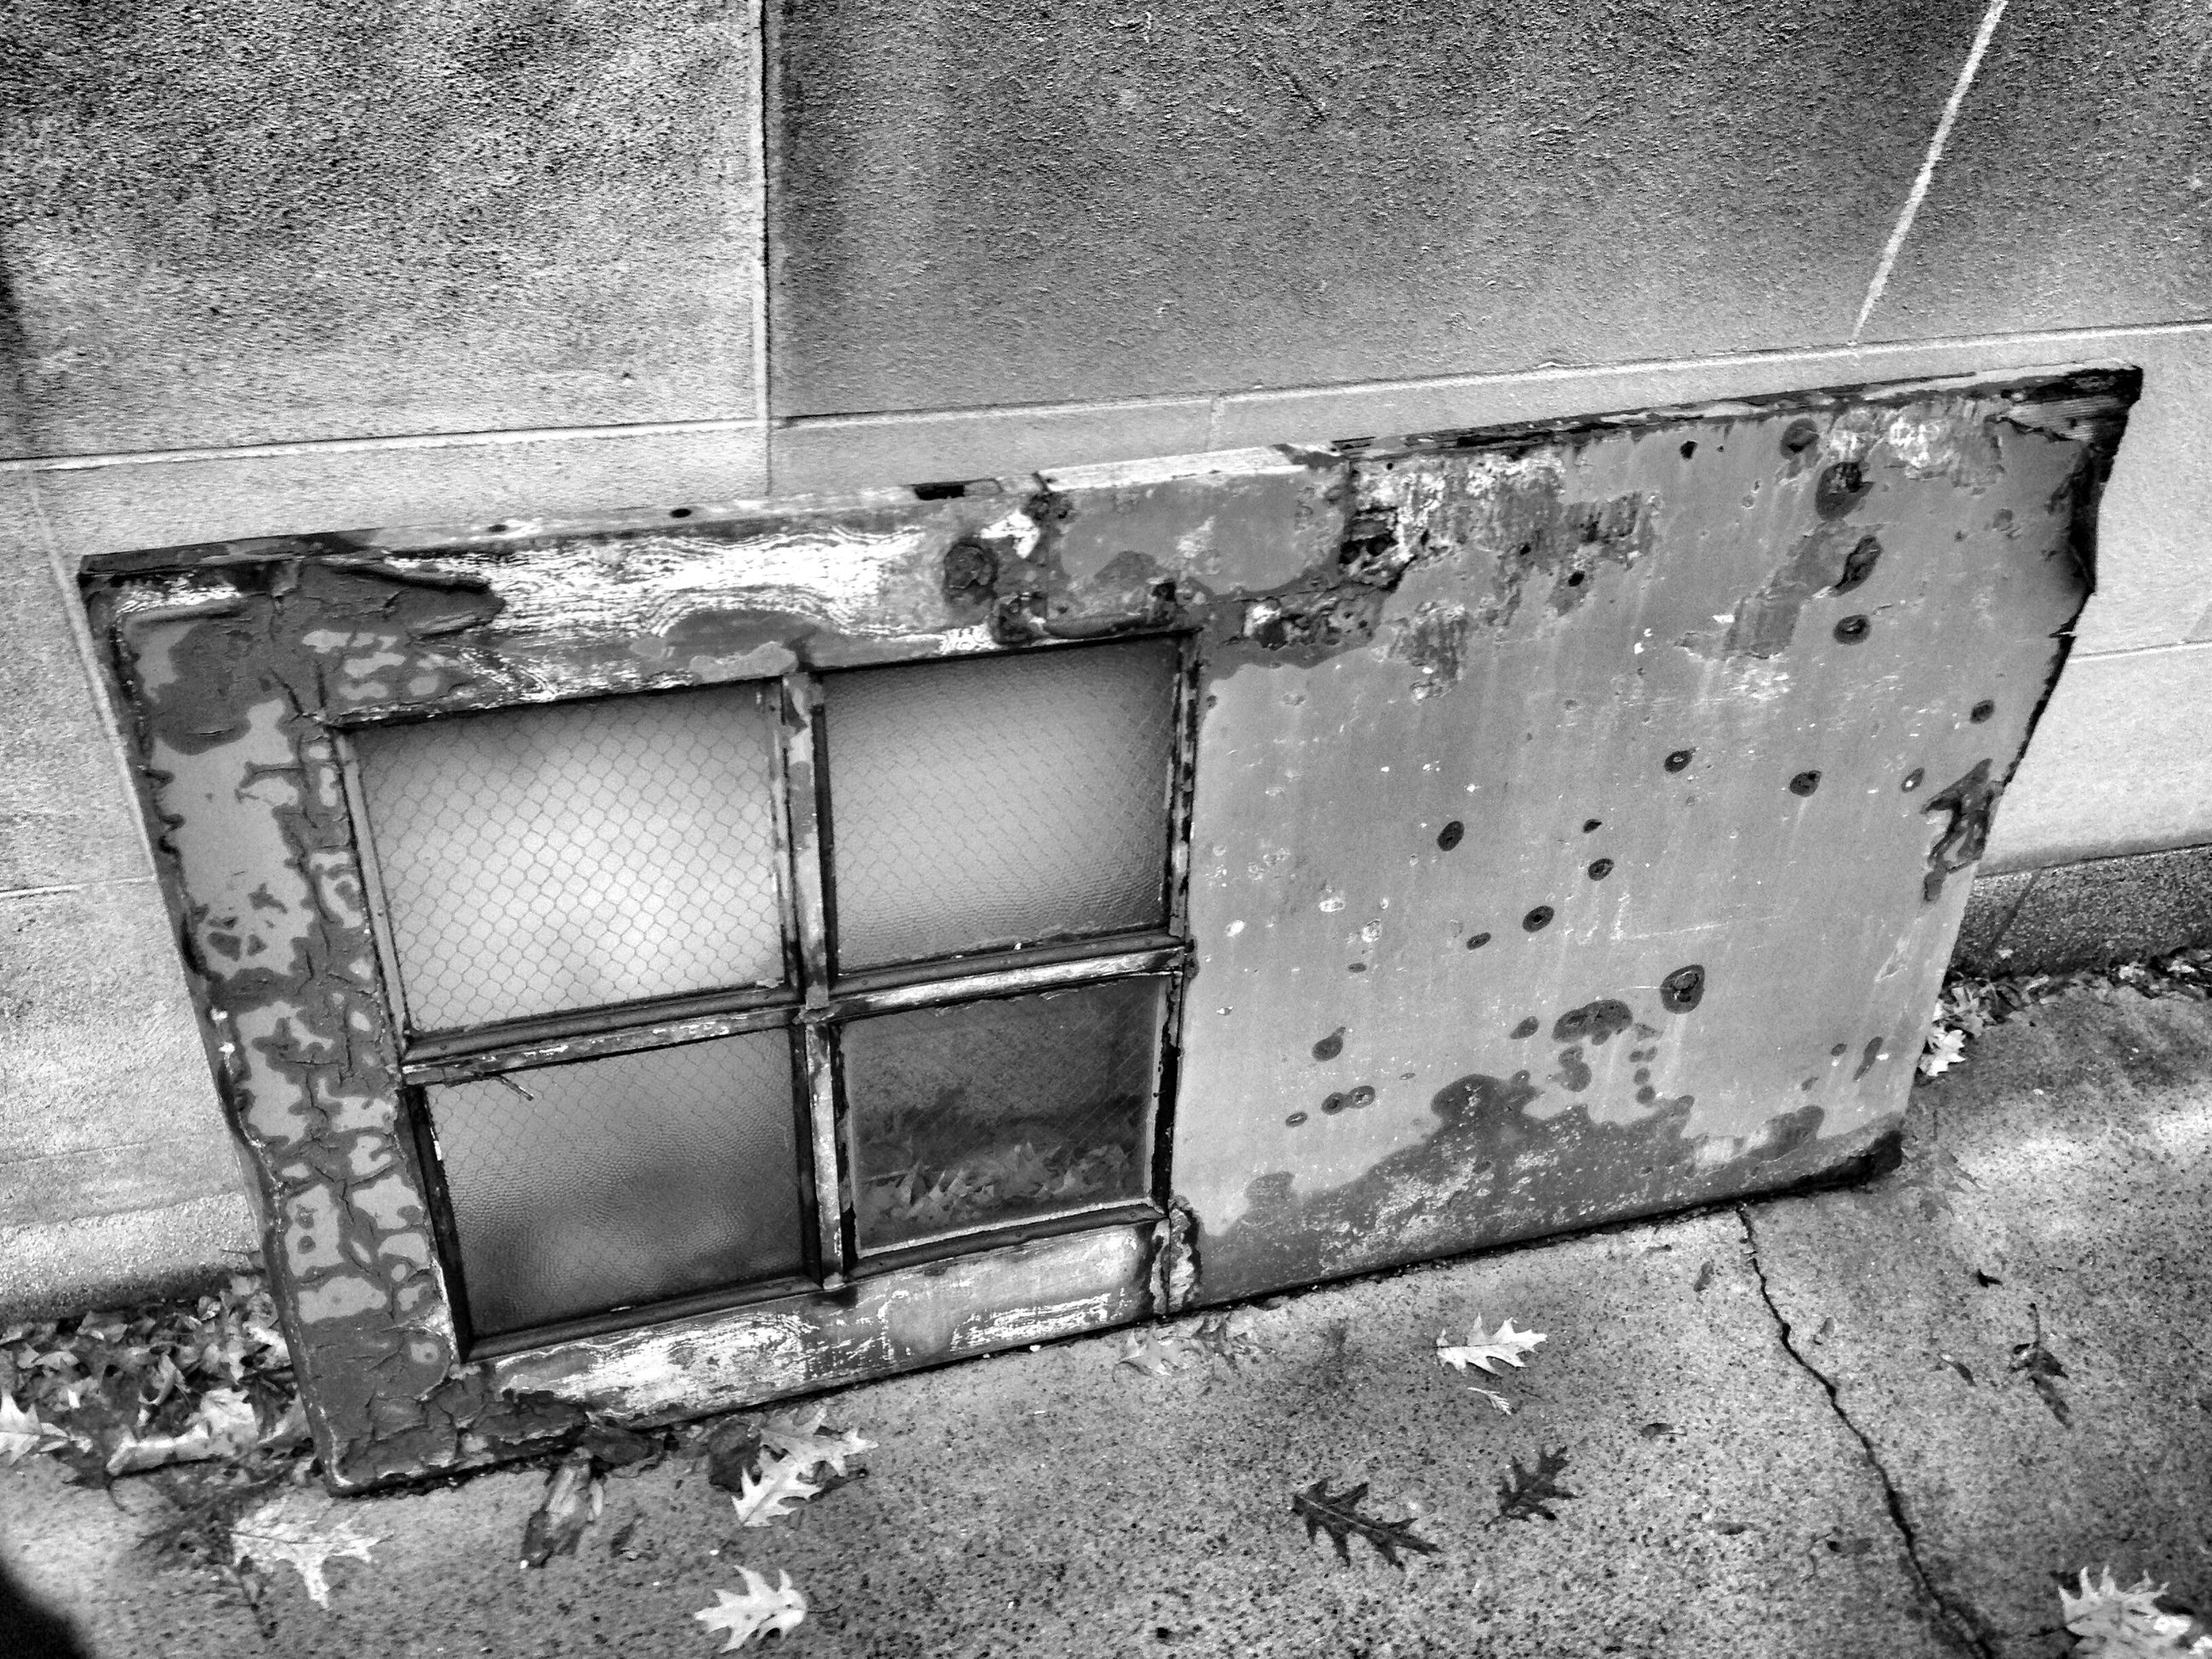 abandoned, damaged, old, obsolete, run-down, deterioration, weathered, rusty, metal, wall - building feature, built structure, bad condition, architecture, close-up, broken, indoors, peeling off, wall, window, peeled